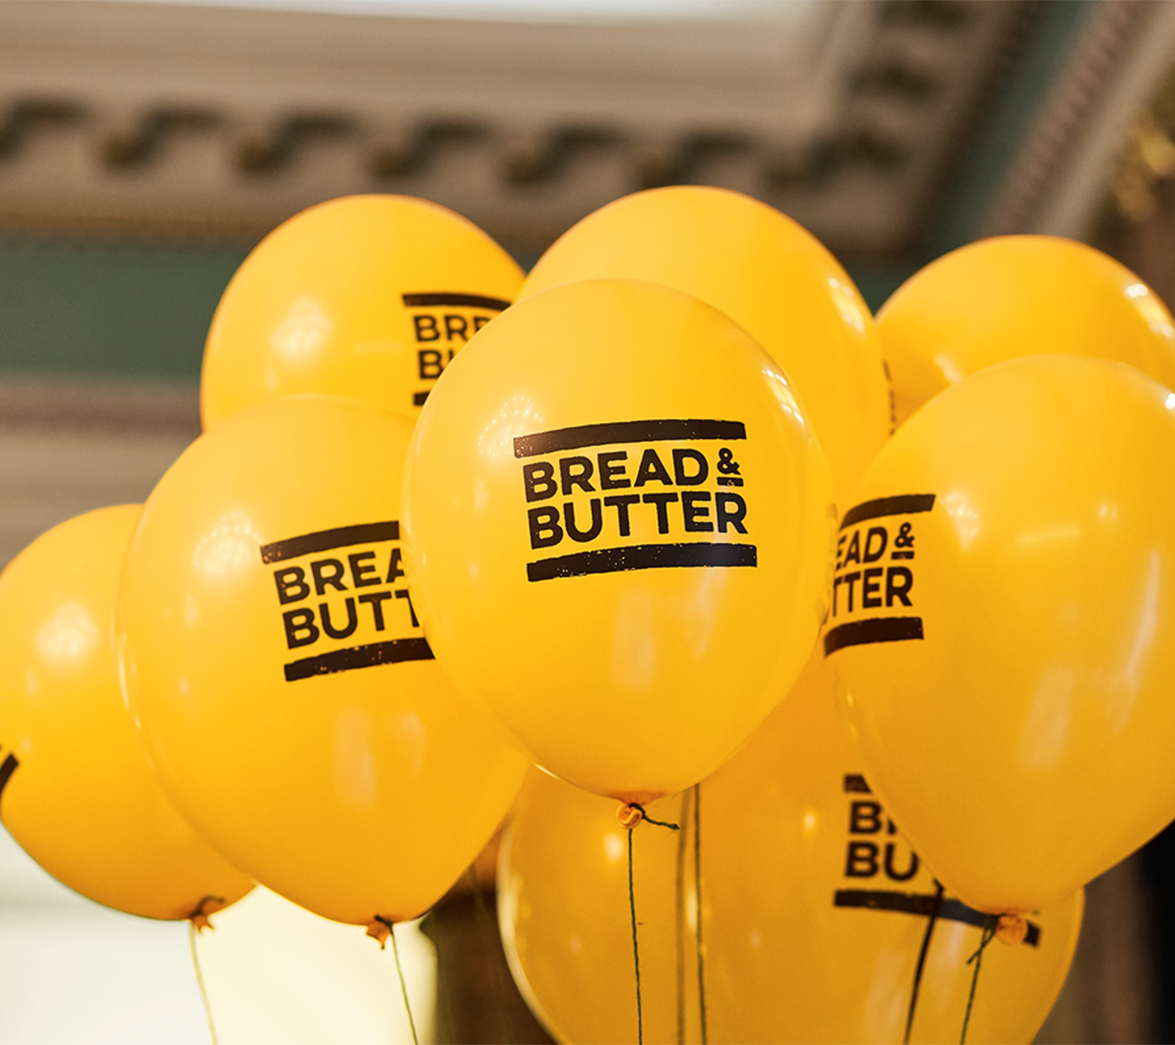 Balloons for food startup Bread and Butter, designed by White Bear Studio